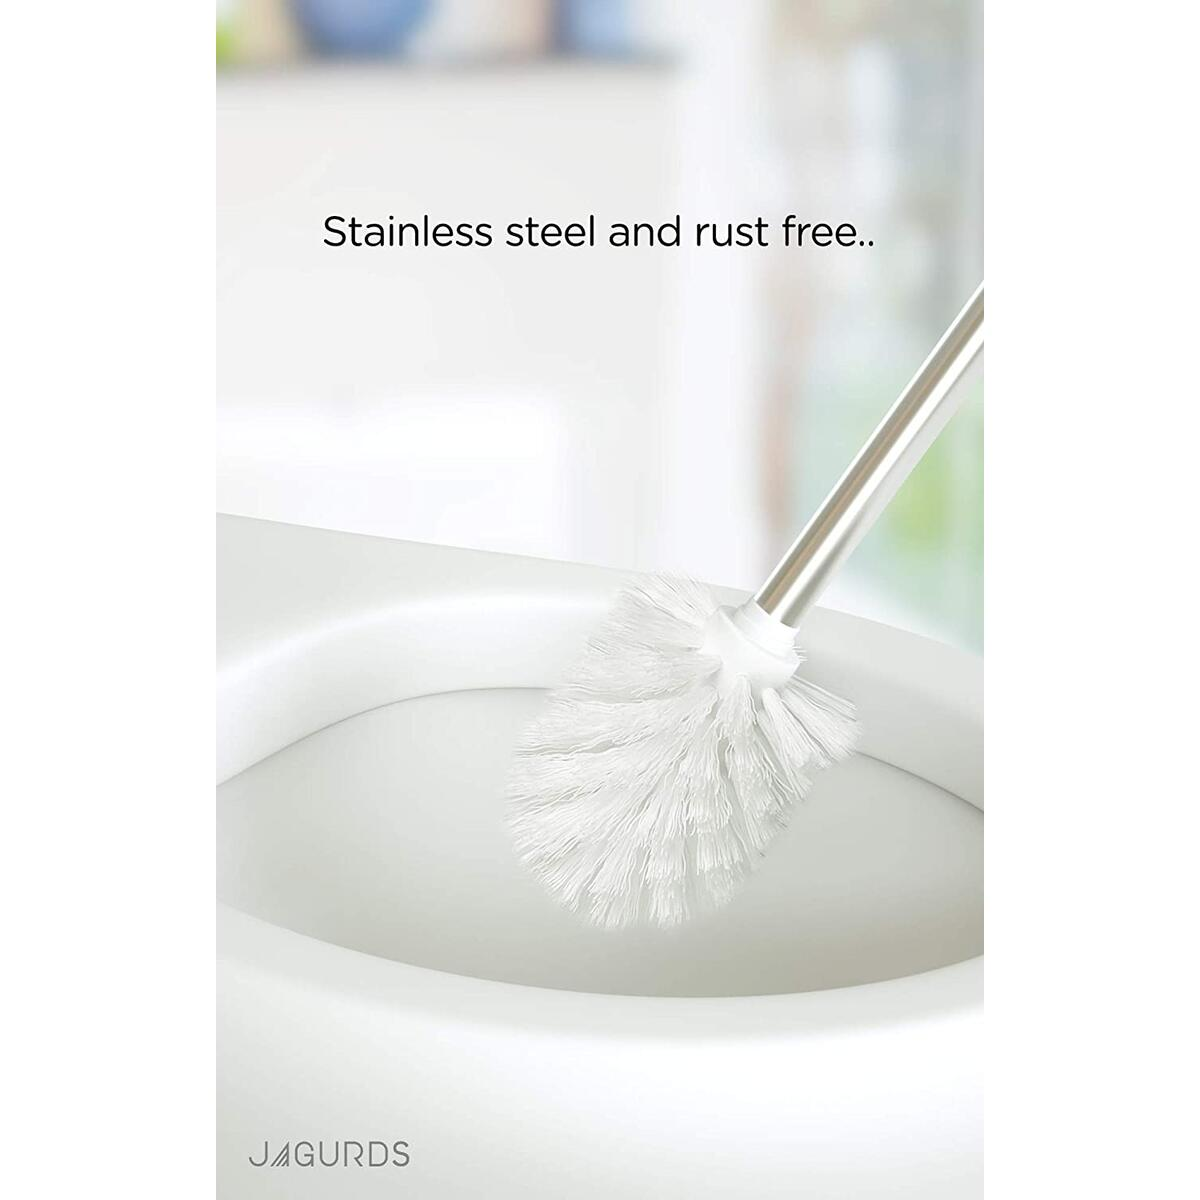 JAGURDS Toilet Brush with Holder Stainless Steel Bowl Cleaner - Perfect for Cleaning and Scrubbing Bathroom Floors and Accessories